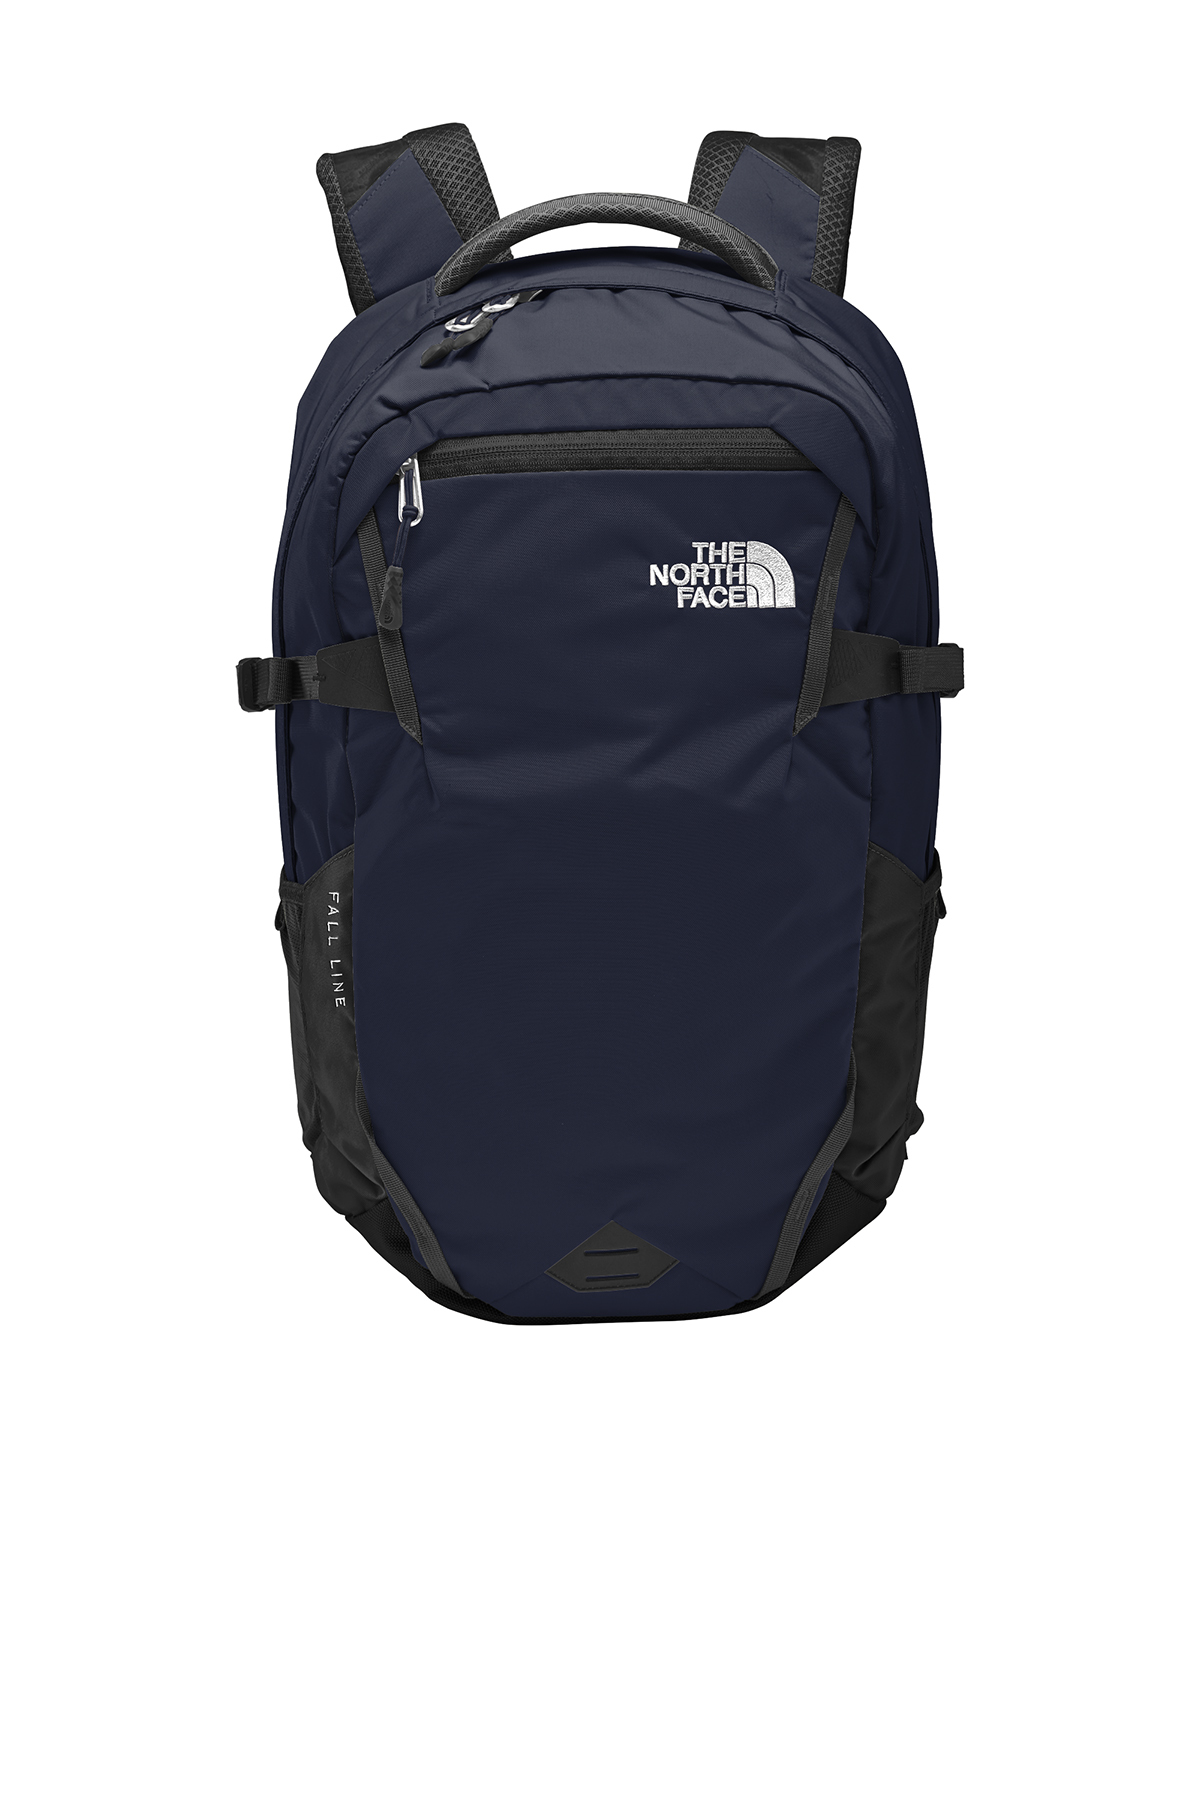 The North Face NF0A3KX7 - Fall Line Backpack